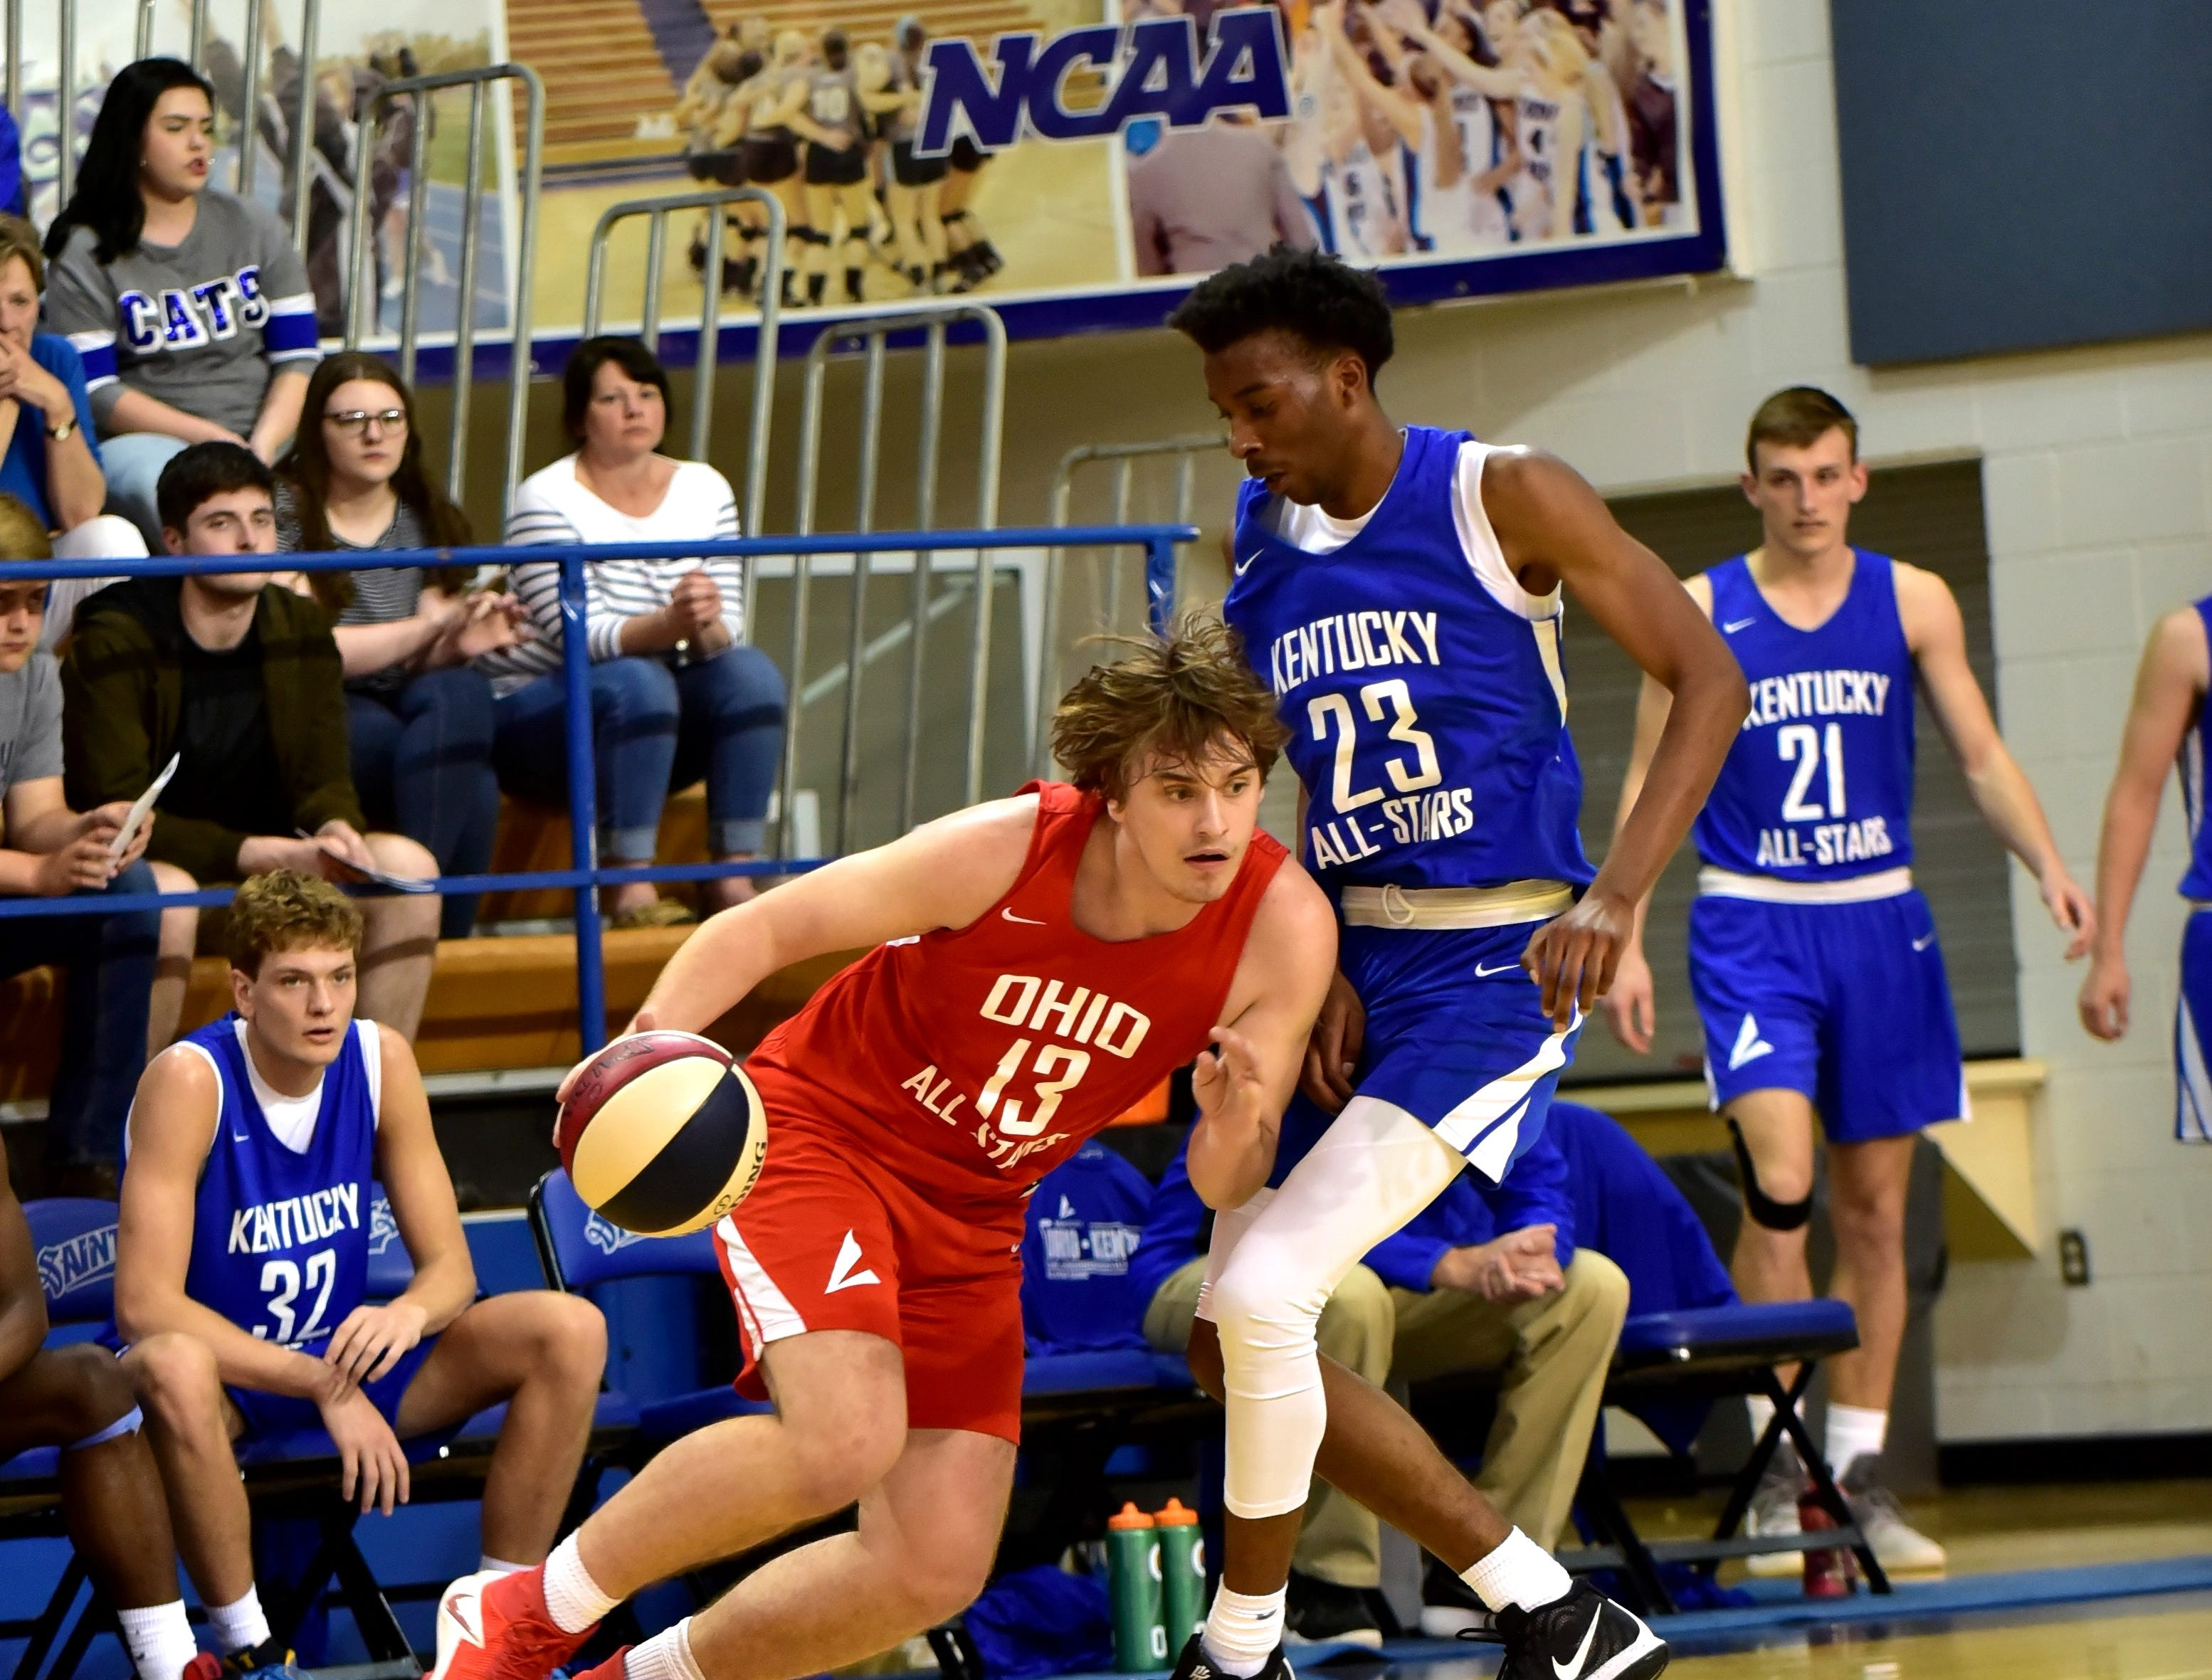 Mason Darby (13) of Oak Hill dribbles out of trouble for the Ohio boys team as Darius Osborne from Pleasure Ridge Park of the Kentucky boys team offers defense at the 28th Annual Ohio-Kentucky All Star Games played at Thomas More University, April 13, 2019